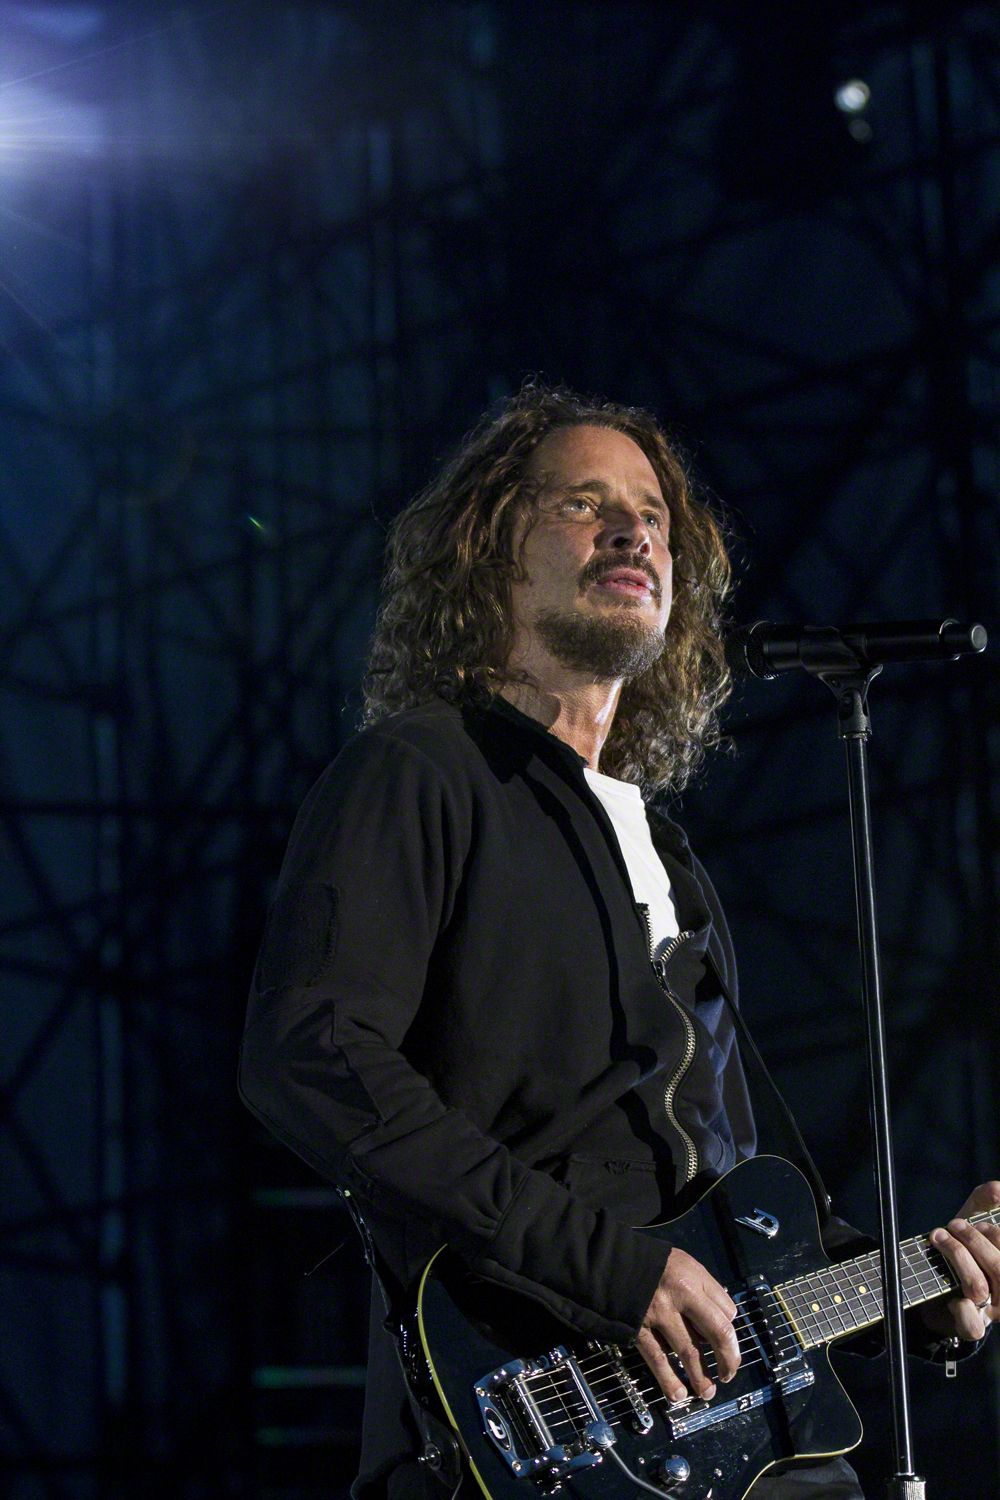 Chris Cornell Collection Songbird Gallery in 2020